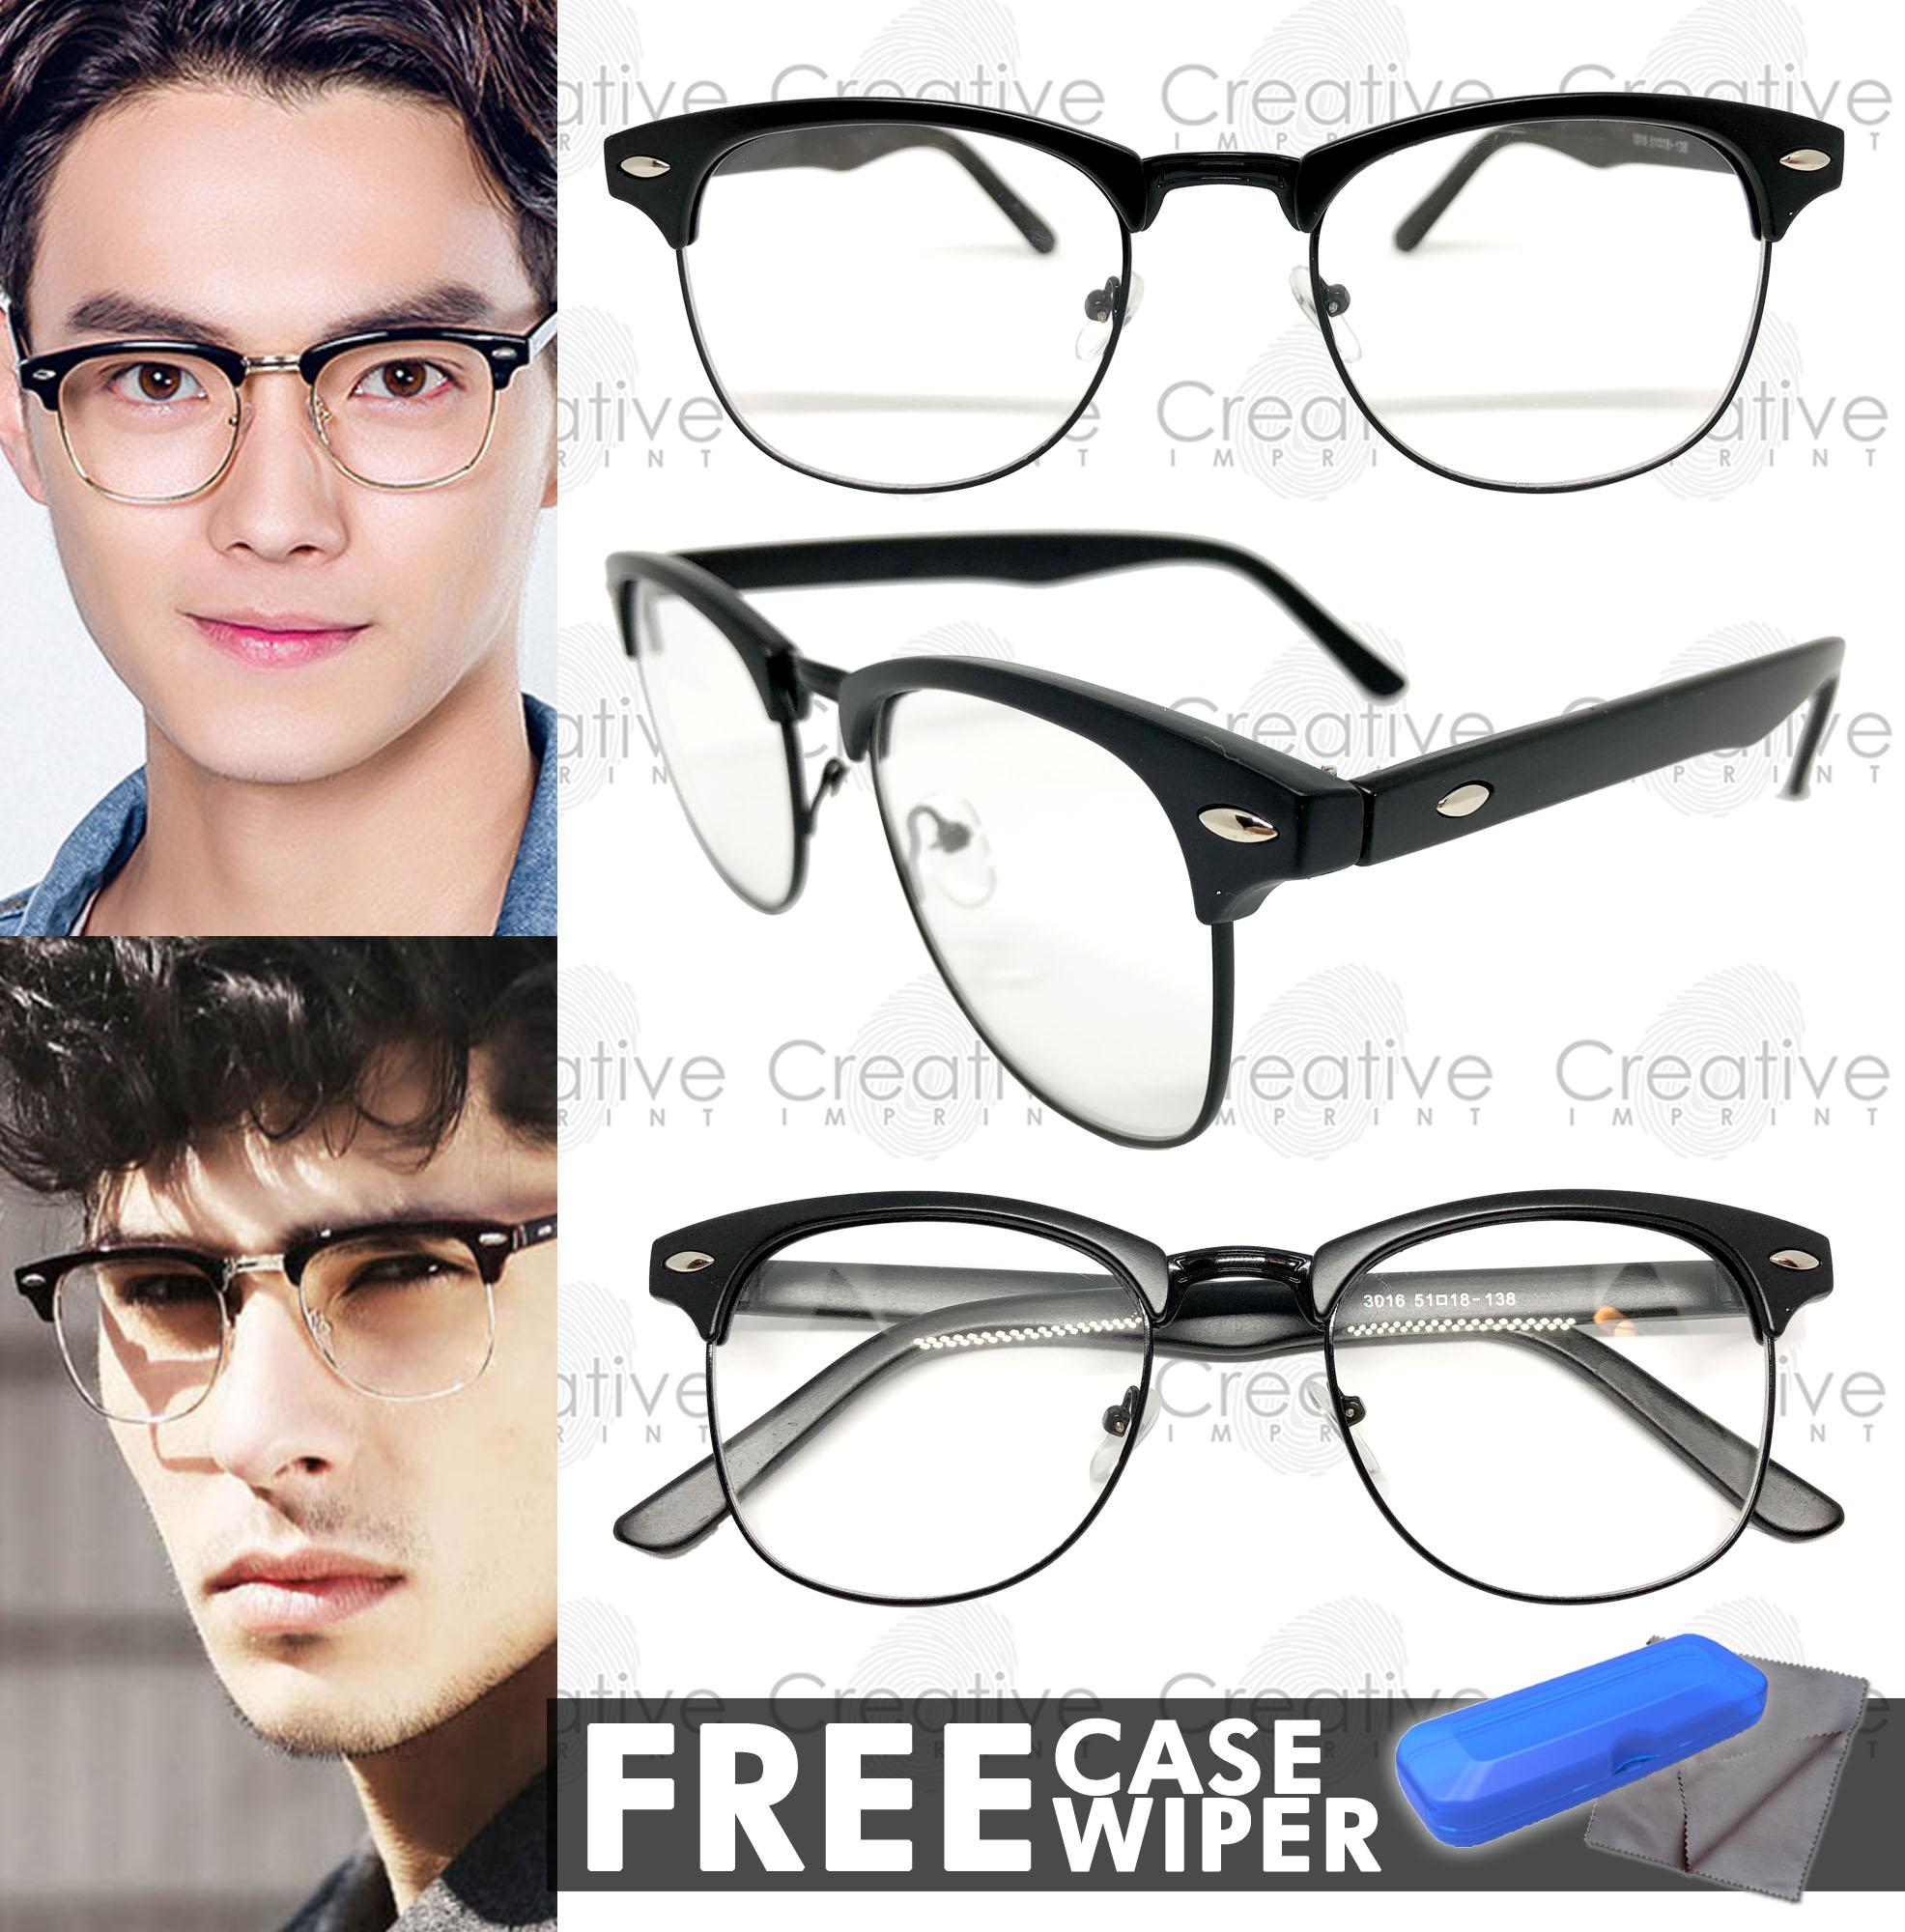 137b478792dc Creative Imprint Eyeglasses Replaceable Lens Clubmaster  01 Premium High  Quality Specs Metal Korean Style Computer